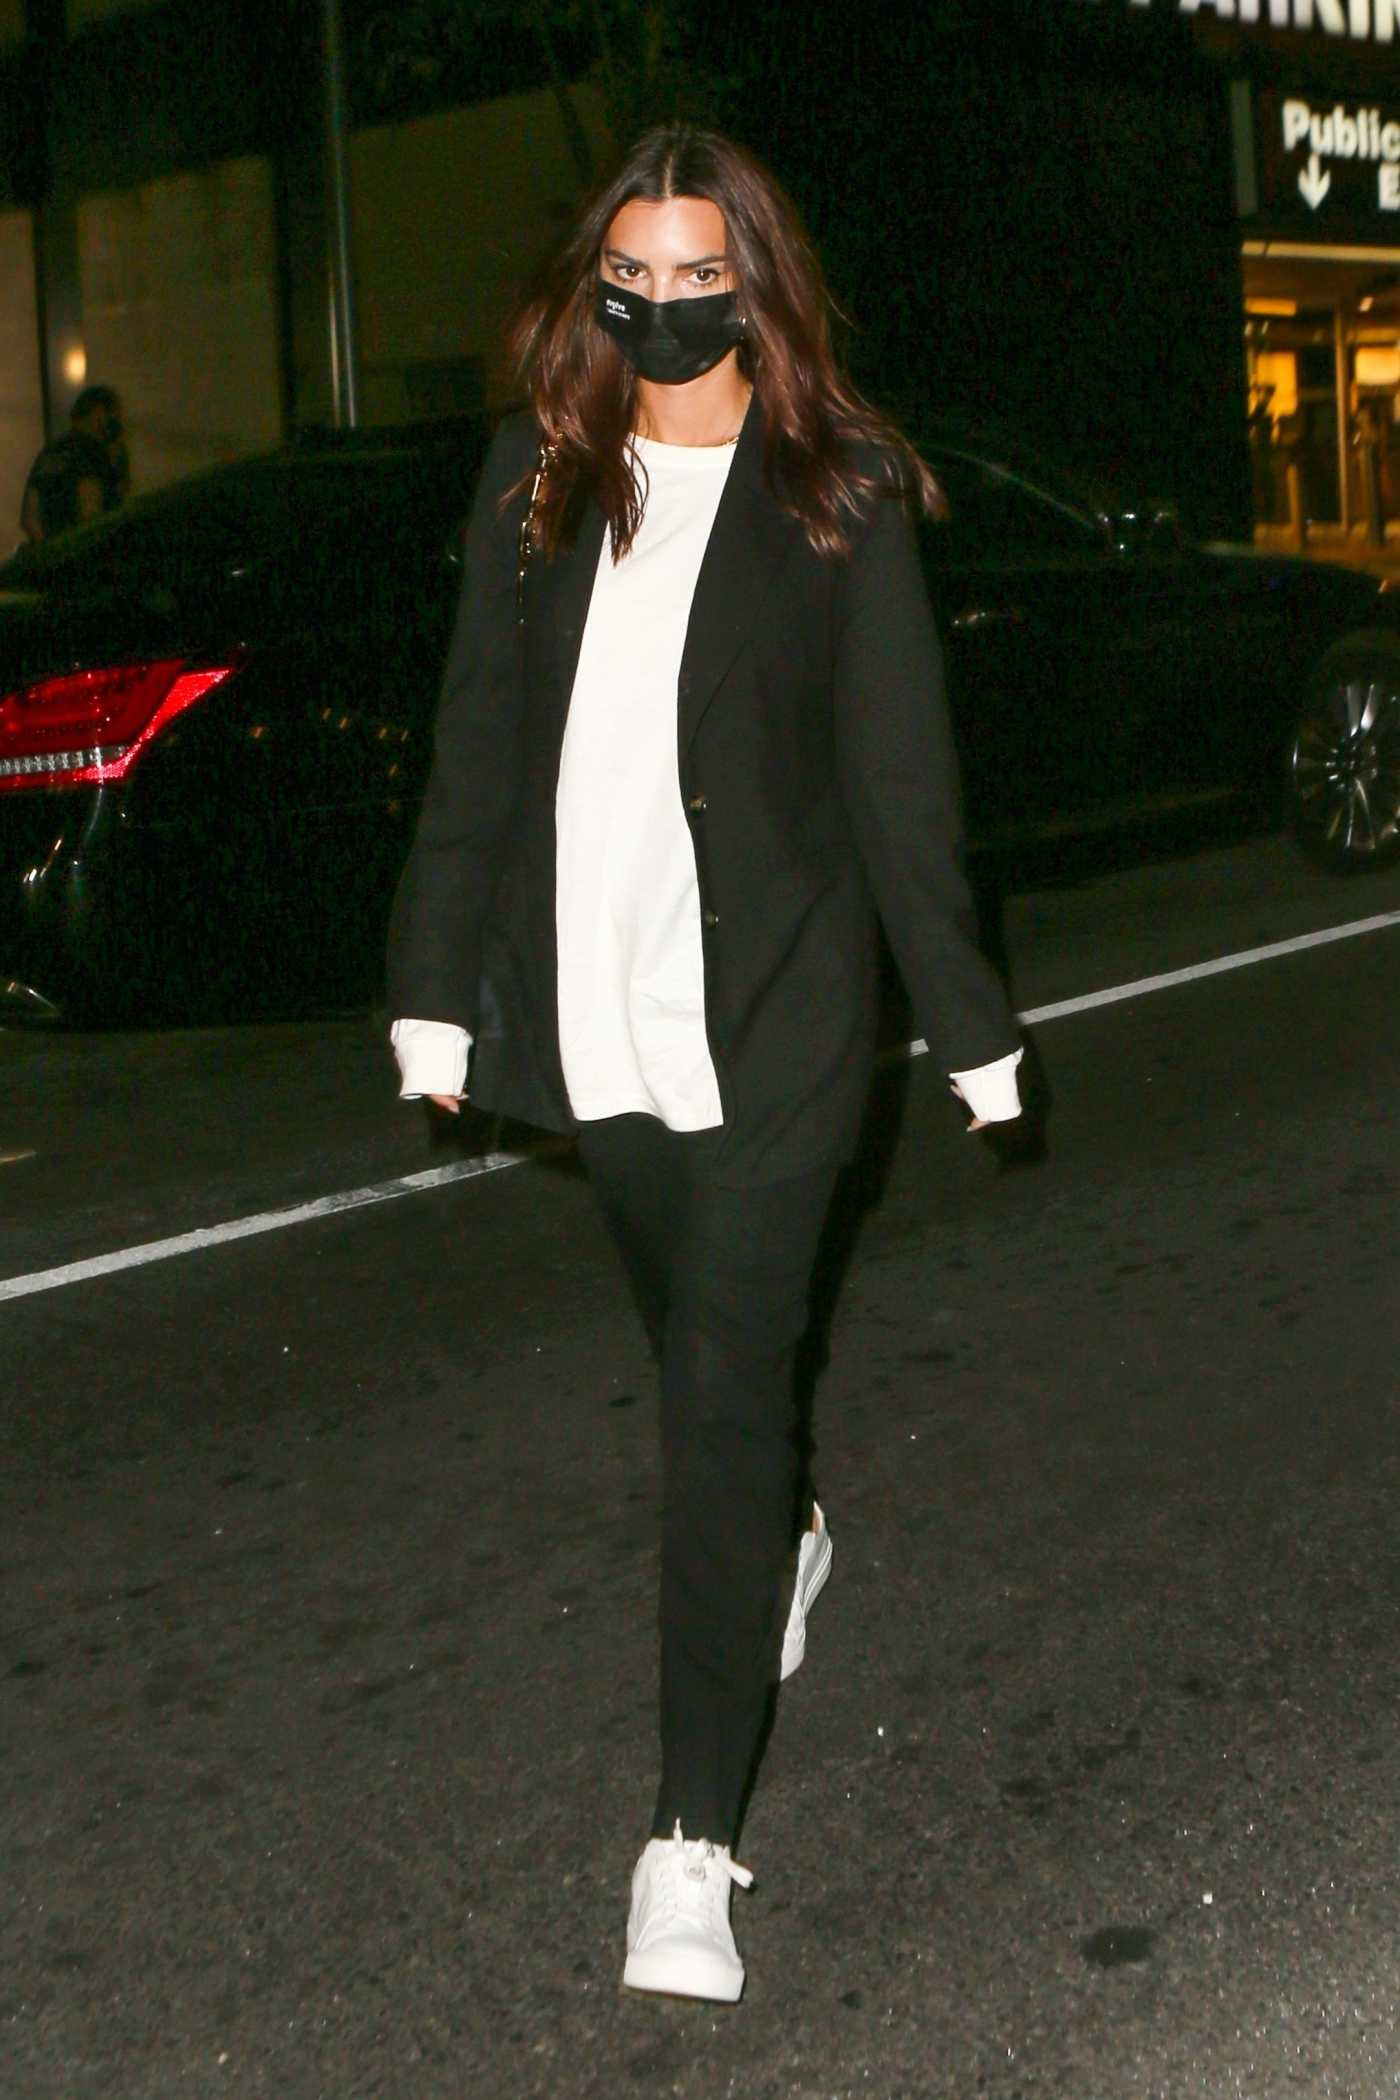 Emily Ratajkowski in a Black Protective Mask Steps Out to Dinner in New York 09/15/2020